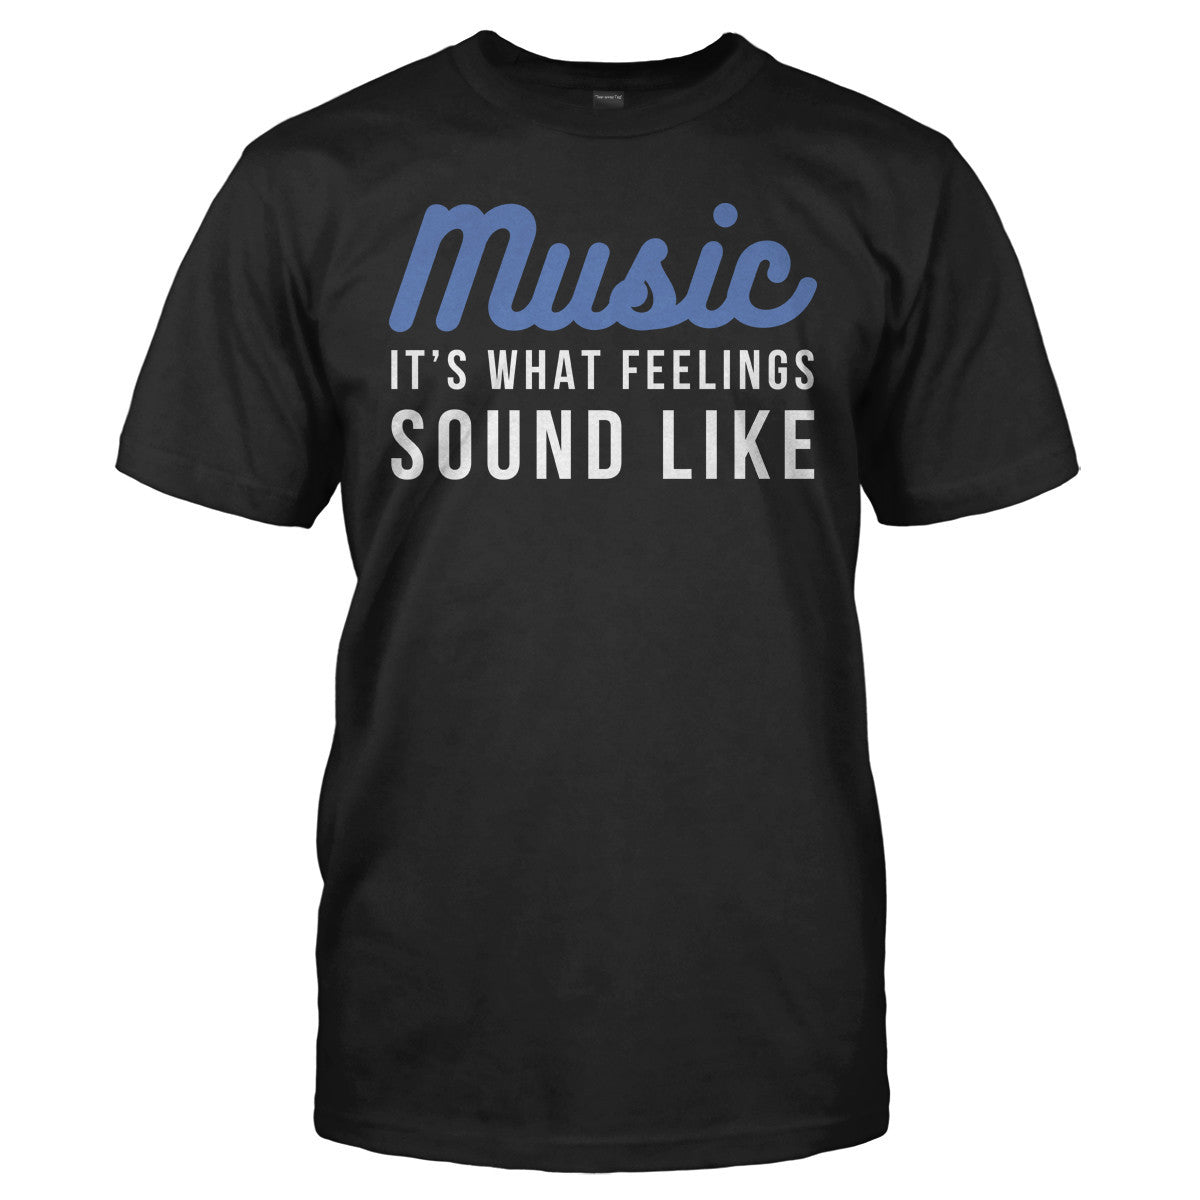 Music - It's What Feelings Sound Like - T Shirt